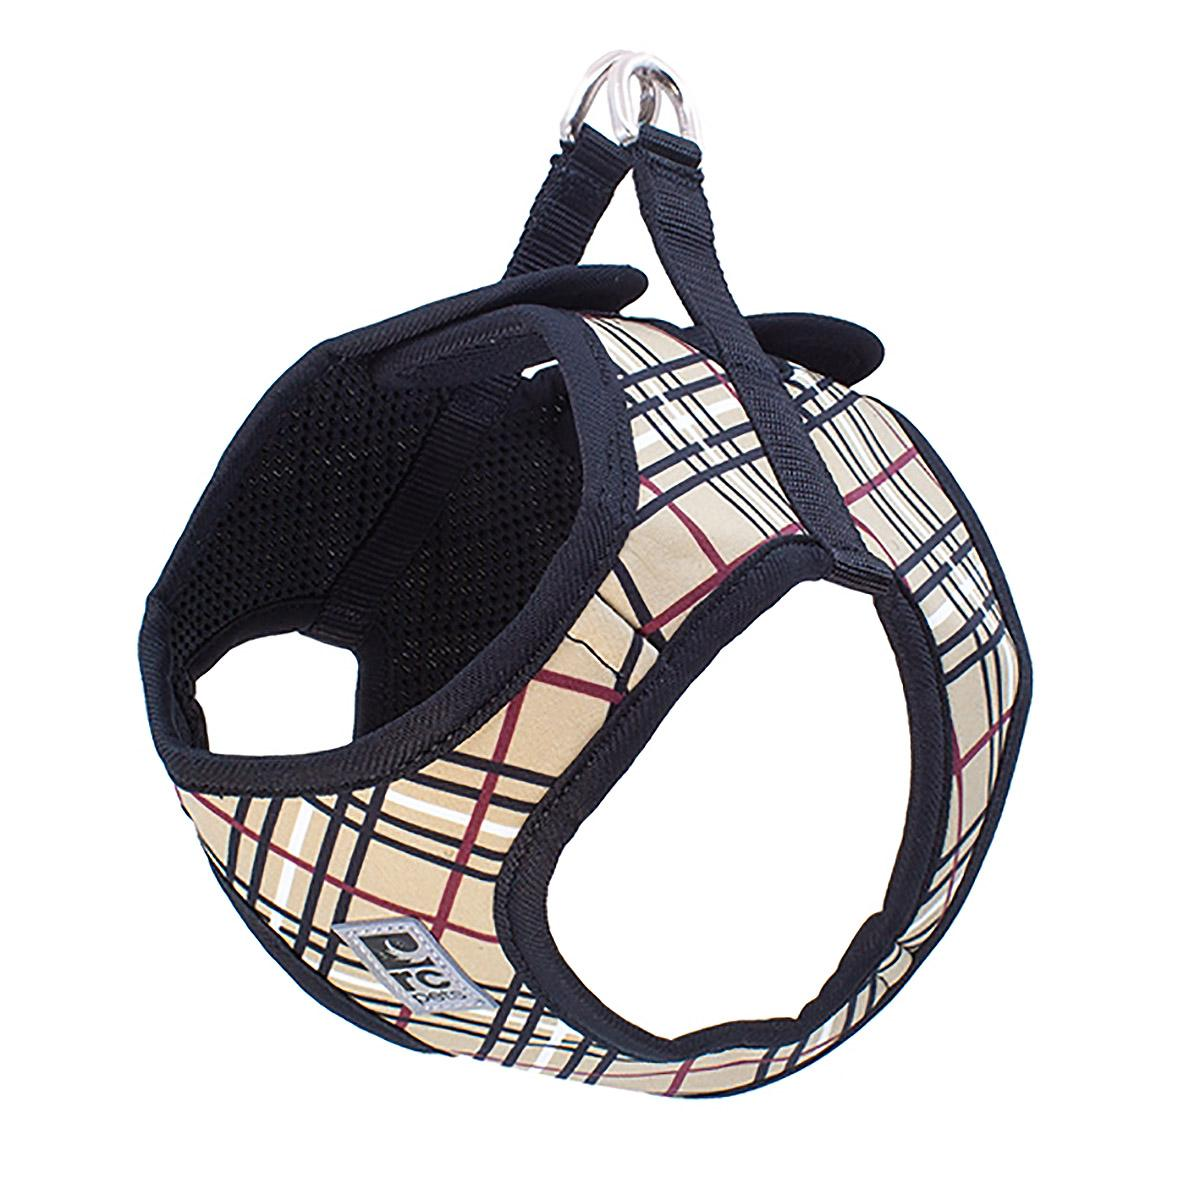 Step-in Cirque Dog Harness - Tan Tartan